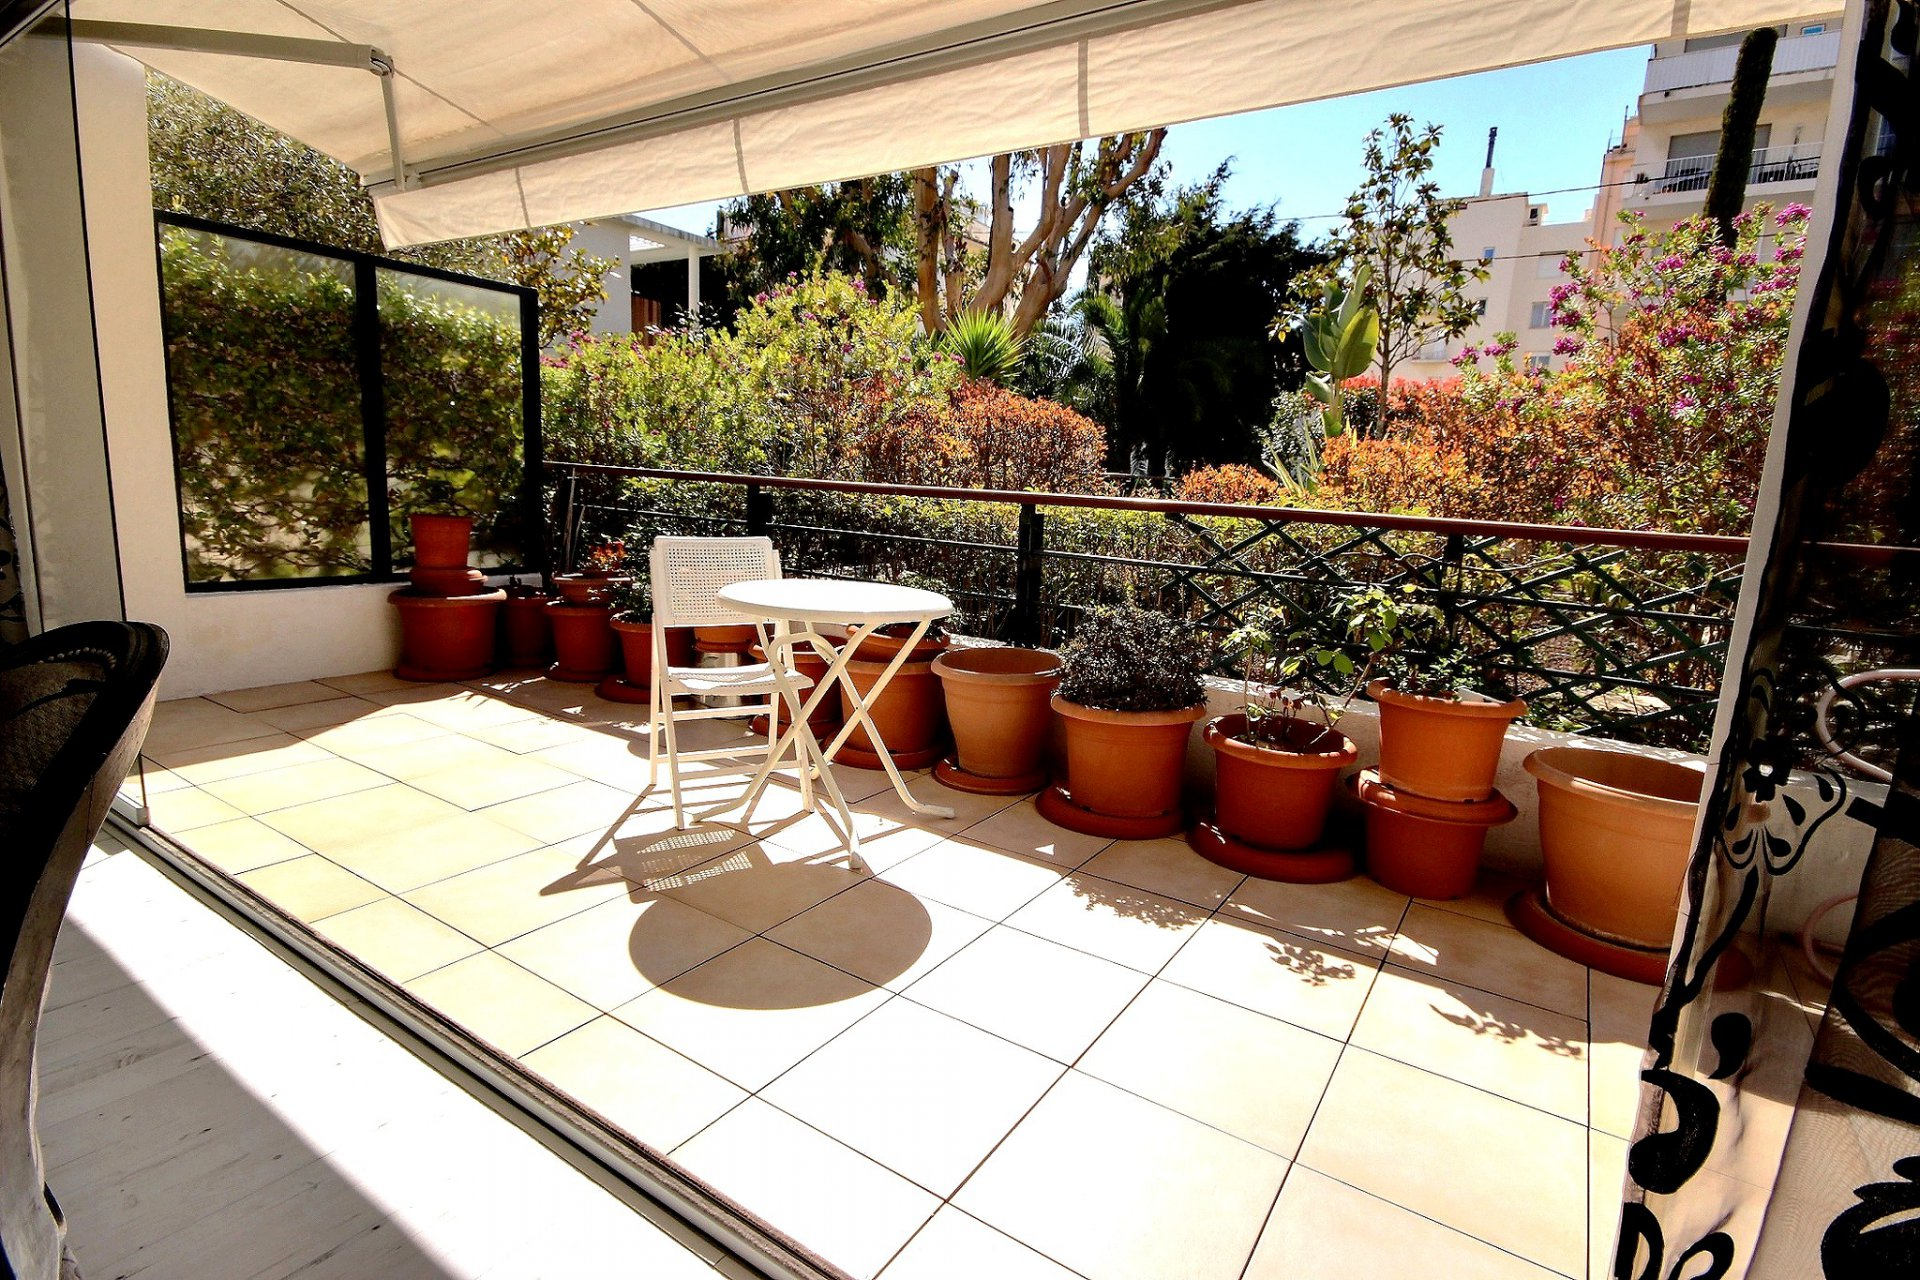 Property for sale in Cannes Basse California with terrace